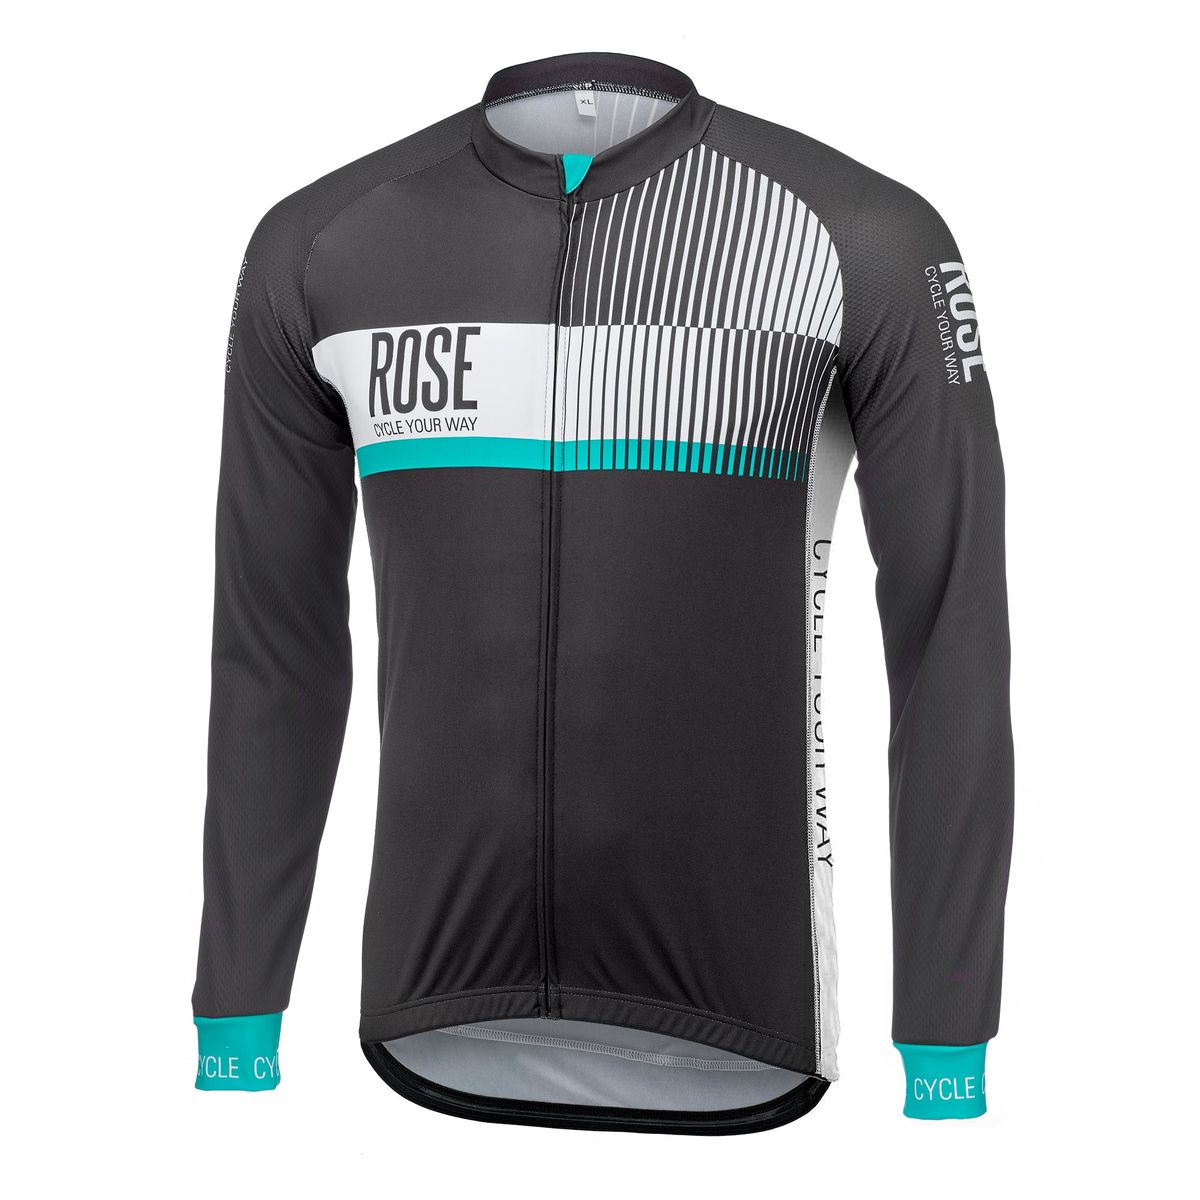 TOP CYW thermal long-sleeved jersey